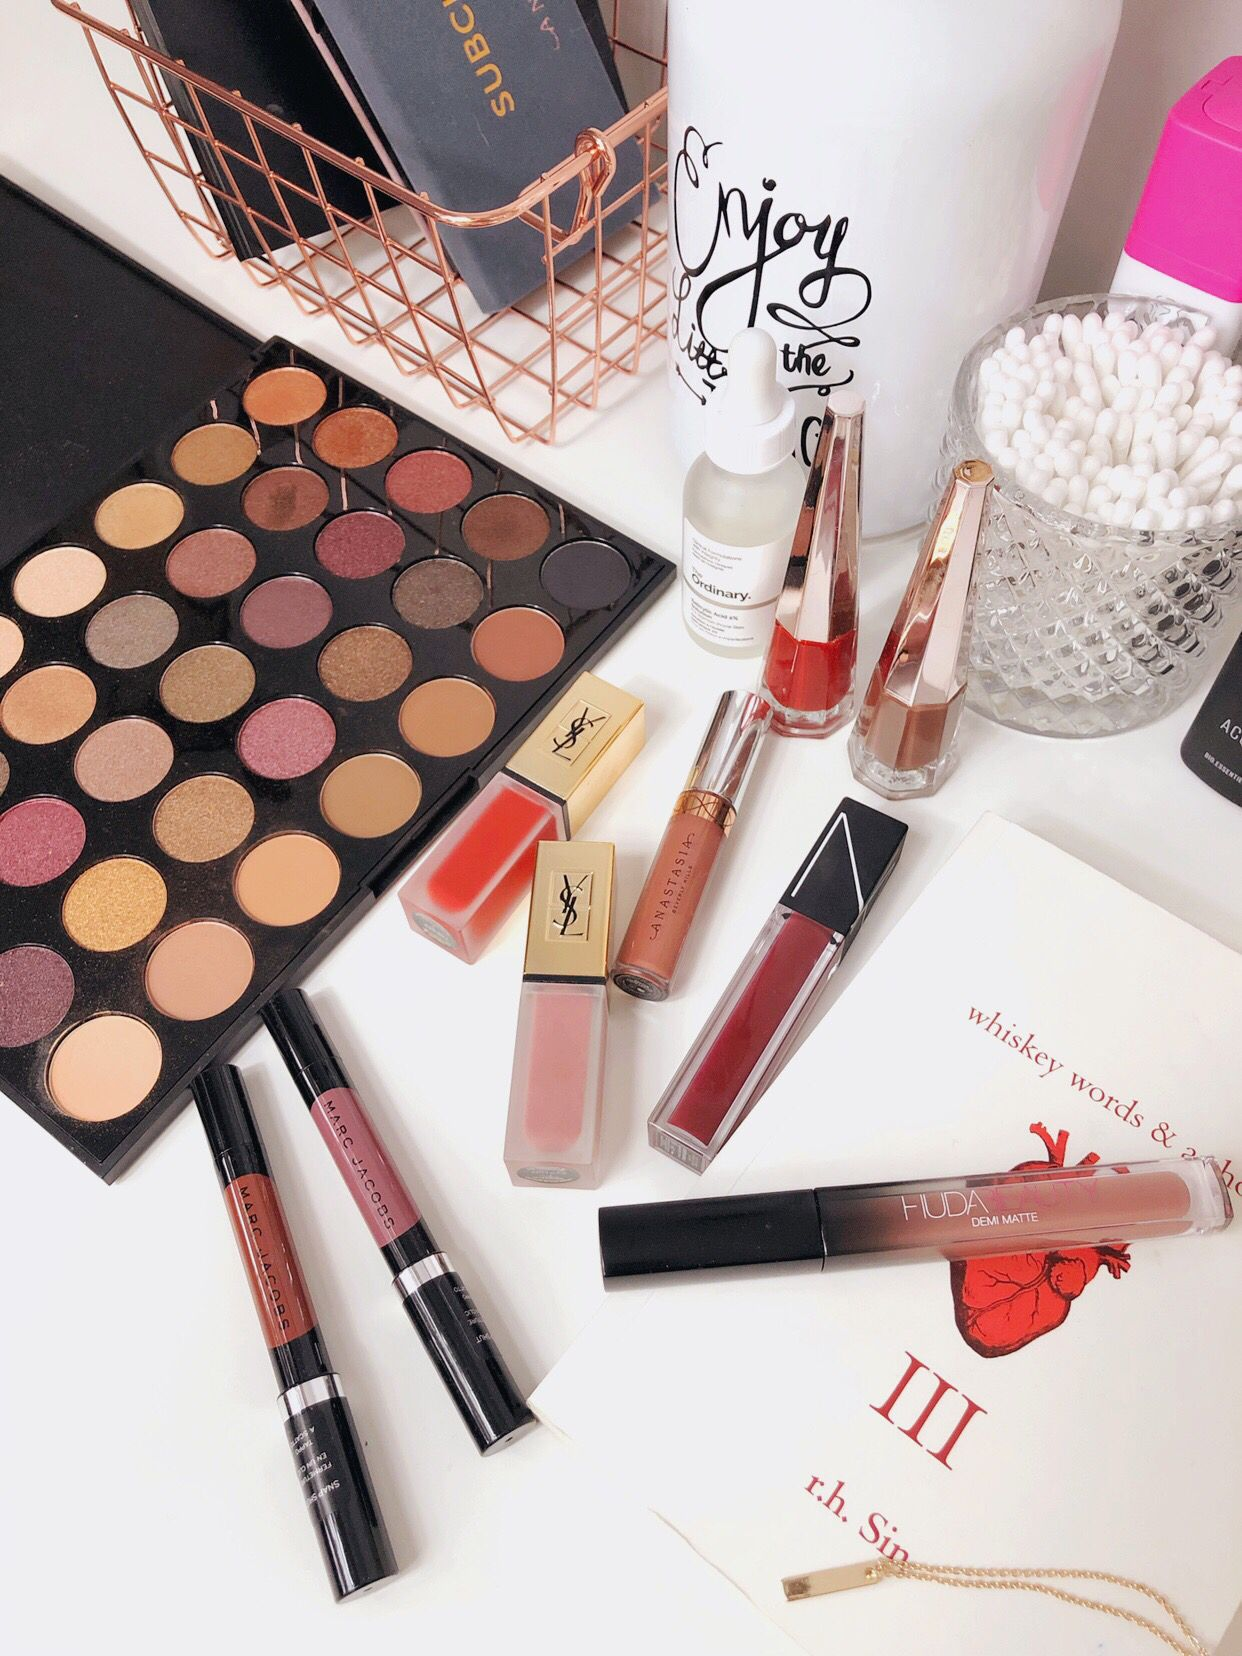 Makeup products, beauty photos, beauty flat lays, flat lays